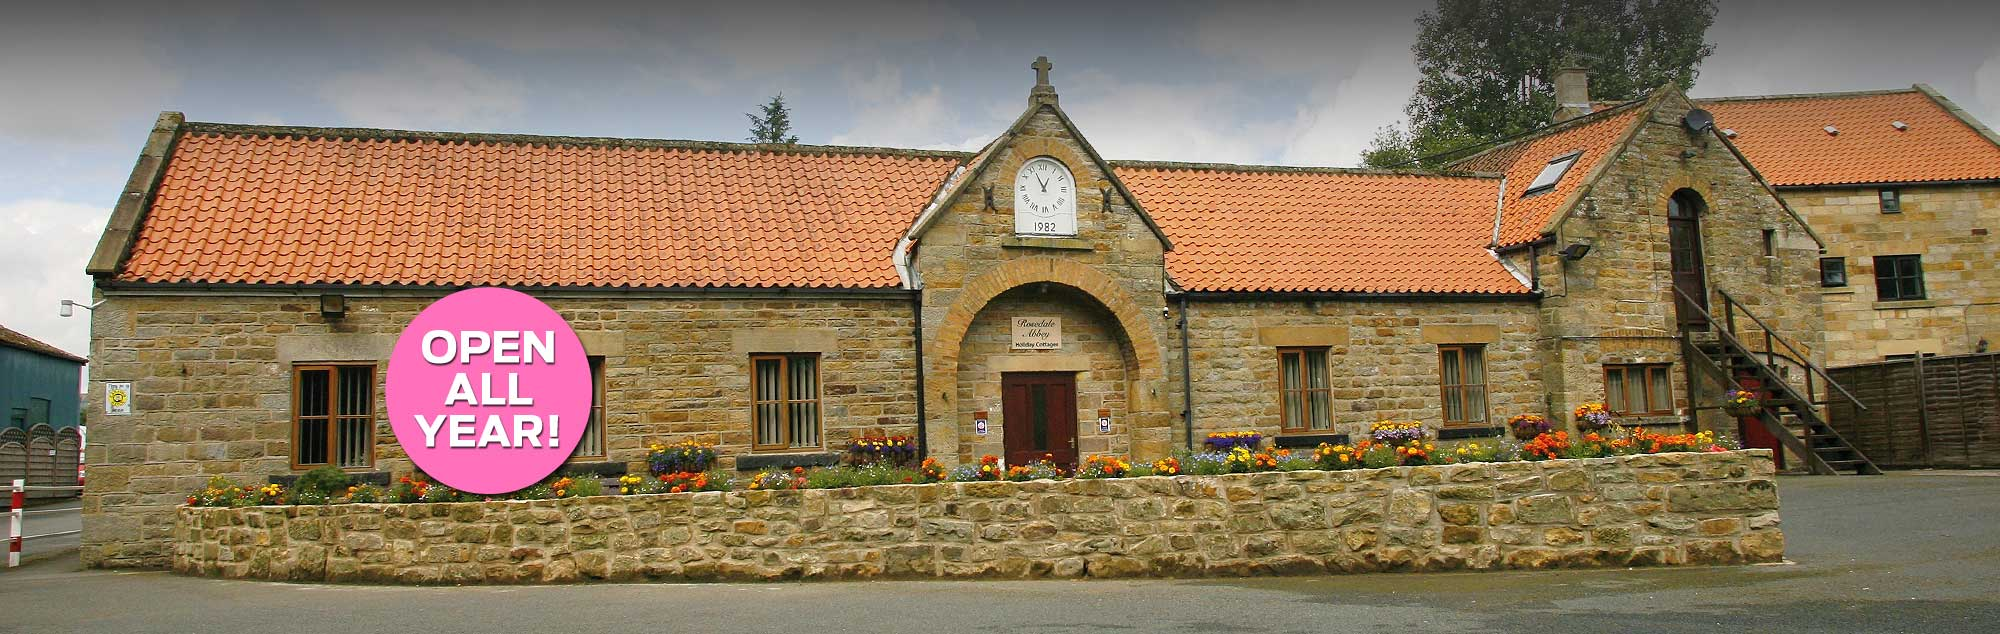 Holiday Cottages in the Yorkshire Moors - Open all year